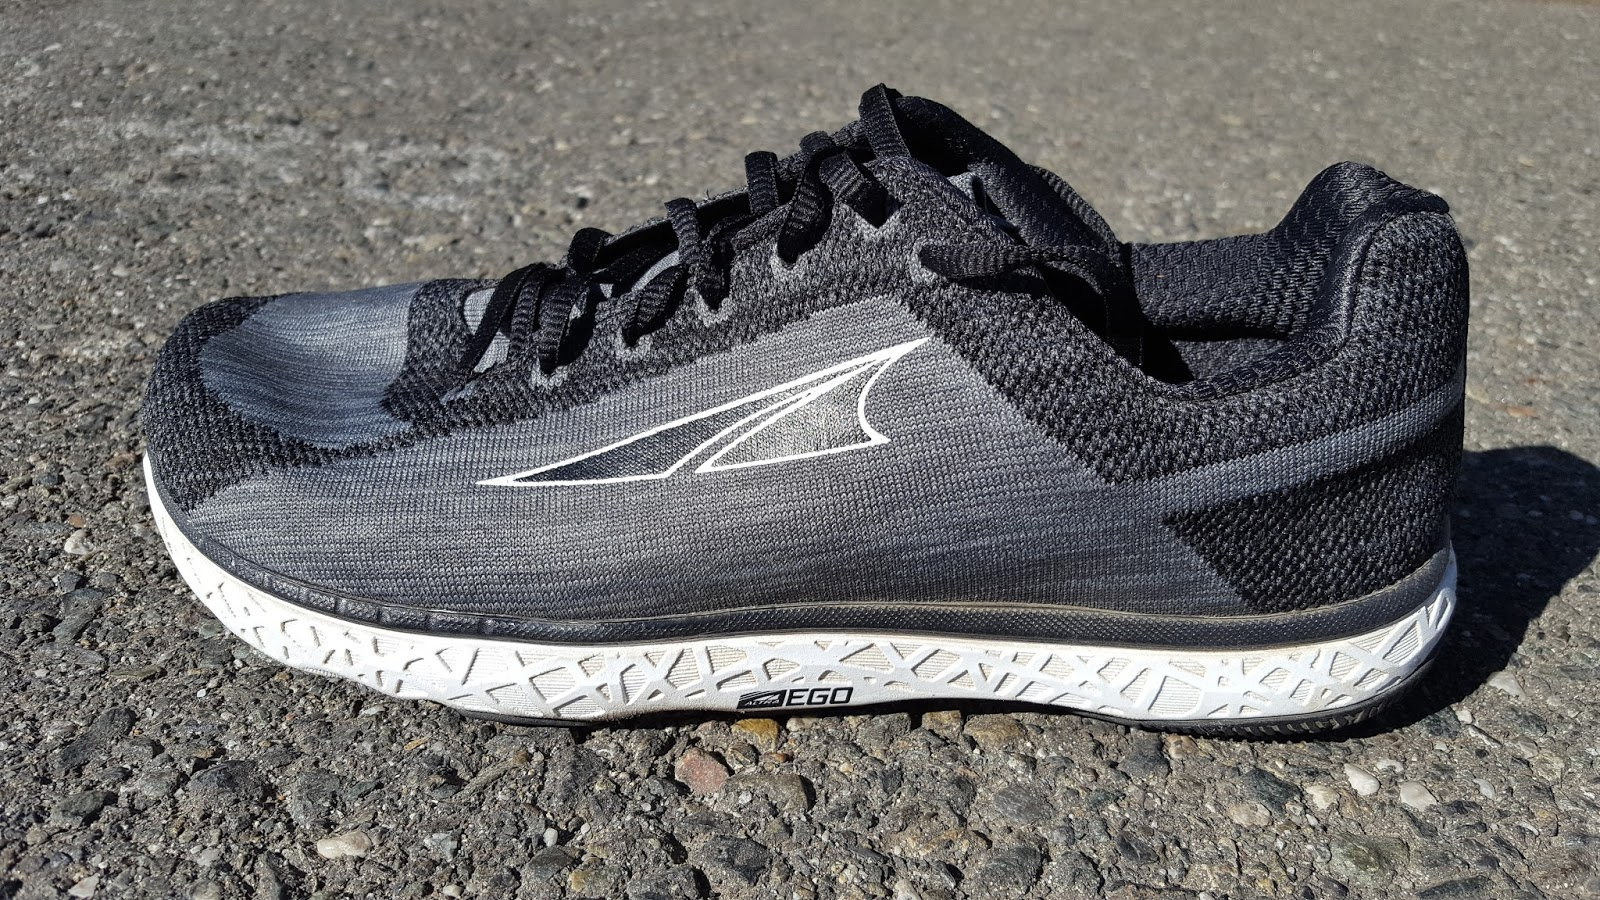 timeless design 54b18 45af9 Running Without Injuries: Altra Escalante Review